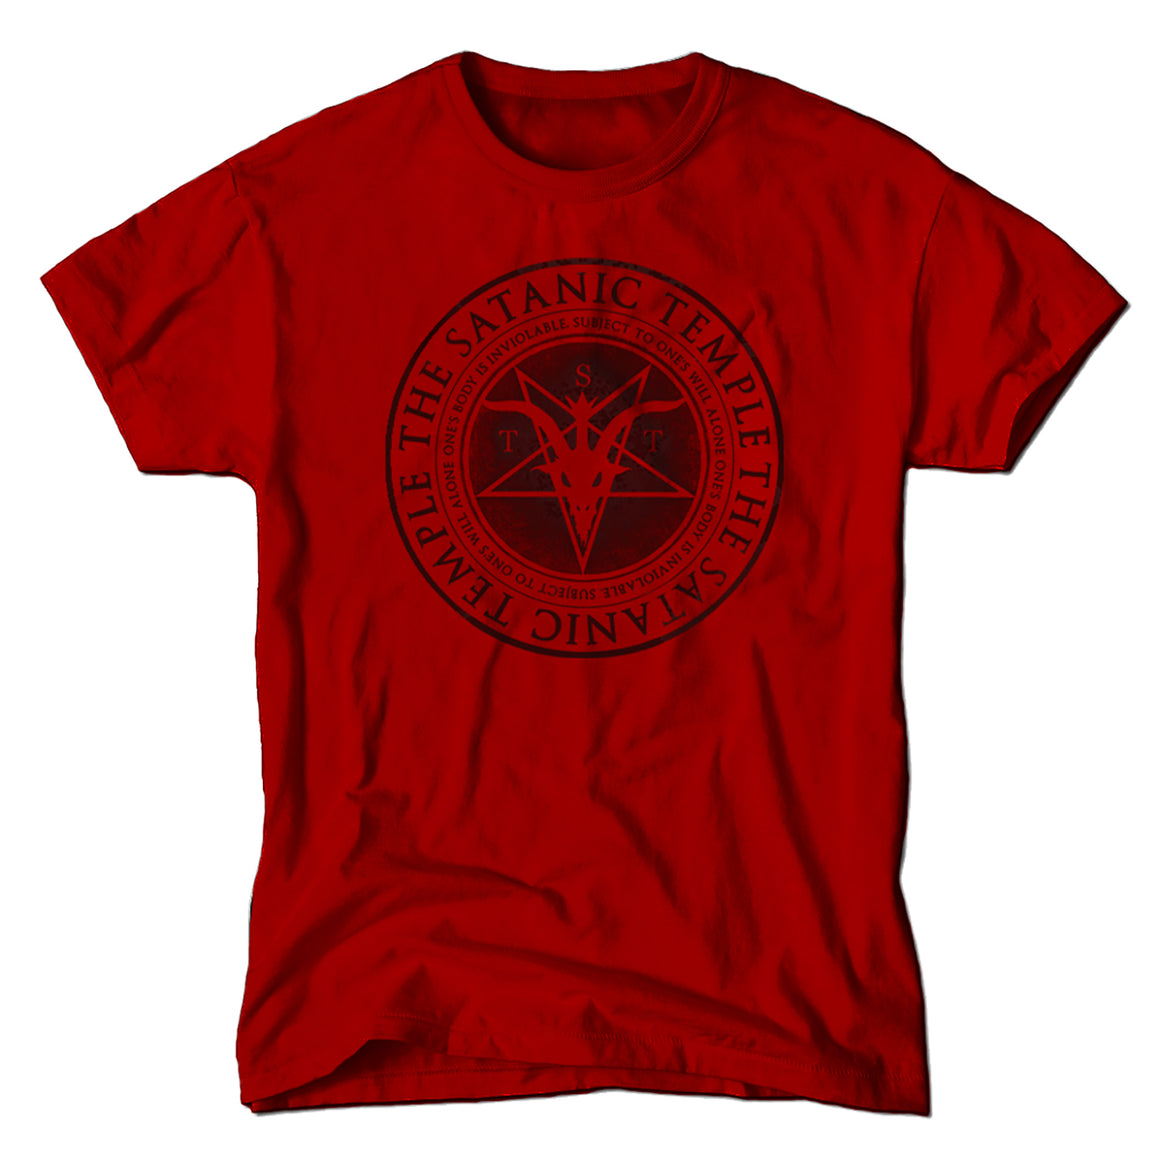 TST Religious Reproductive Rights Tenet T-shirt in Red One's body is inviolable subject to ones own will alone